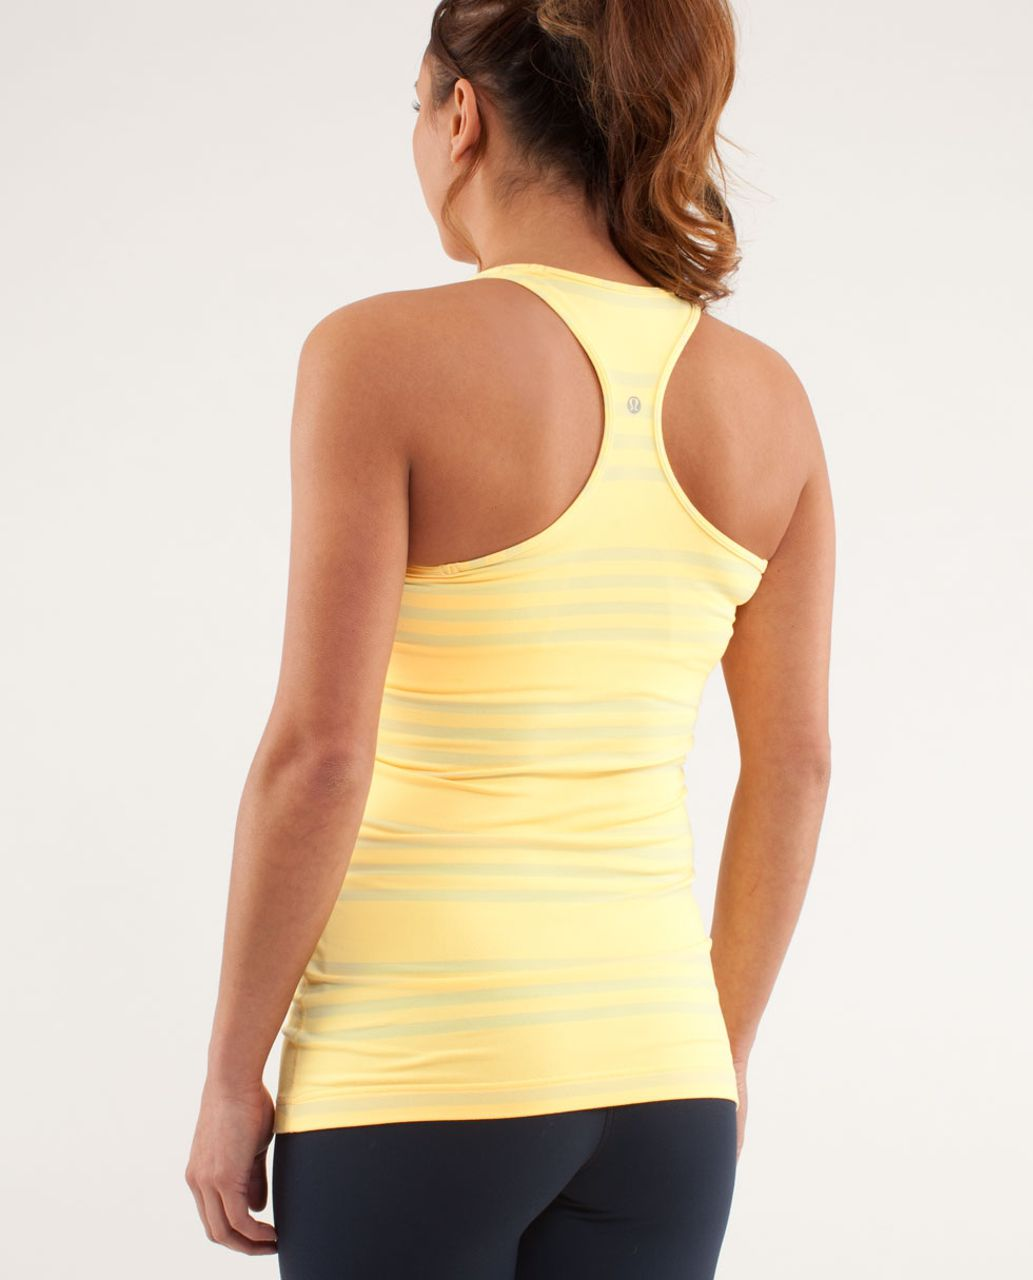 Lululemon Cool Racerback - Ocean Stripe Mellow Lemon